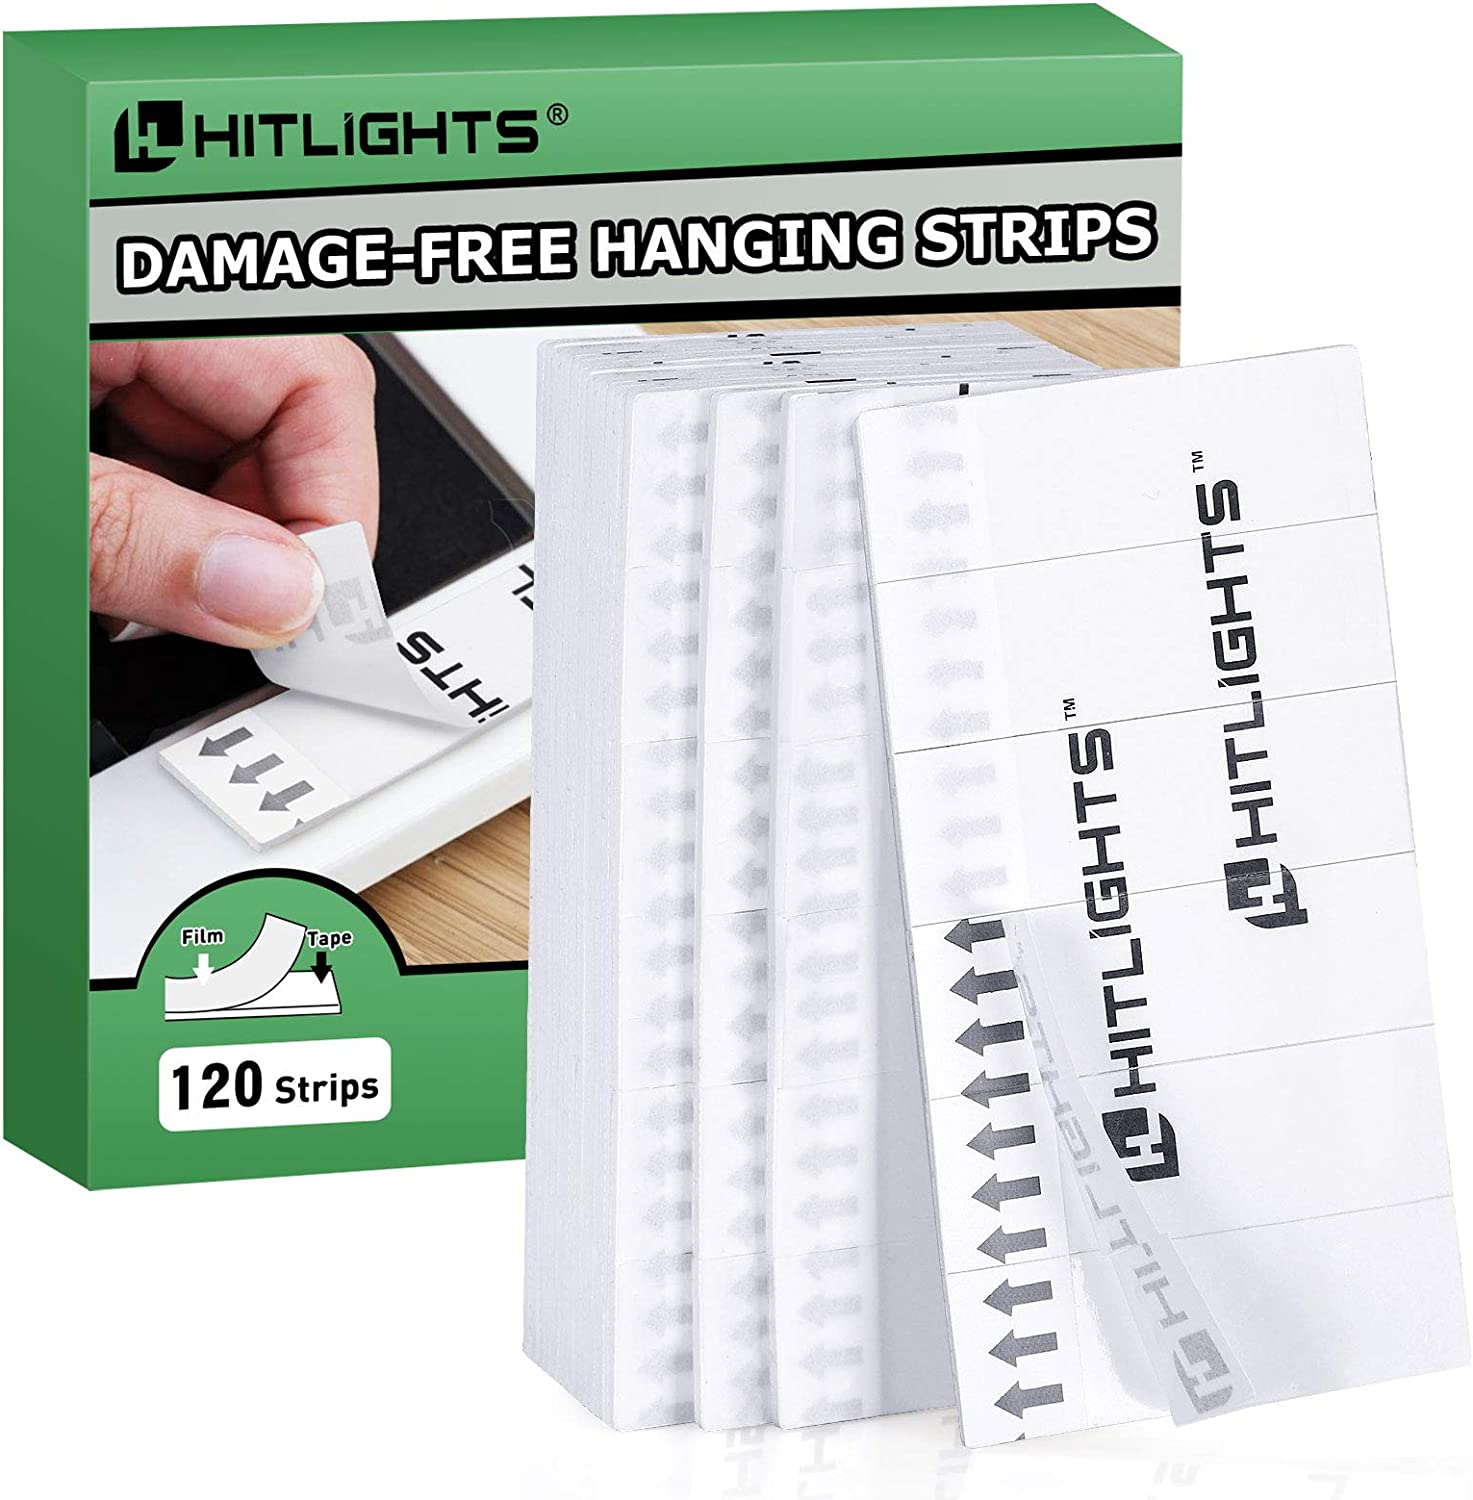 HitLights Picture Hanging Strips, 120pcs Replacement Waterproof Heavy Duty Double Sided Strips, Decorate Without Damage for Wall Art, LED Lights, Home, Office | 1.8in x 0.6in Strip, White